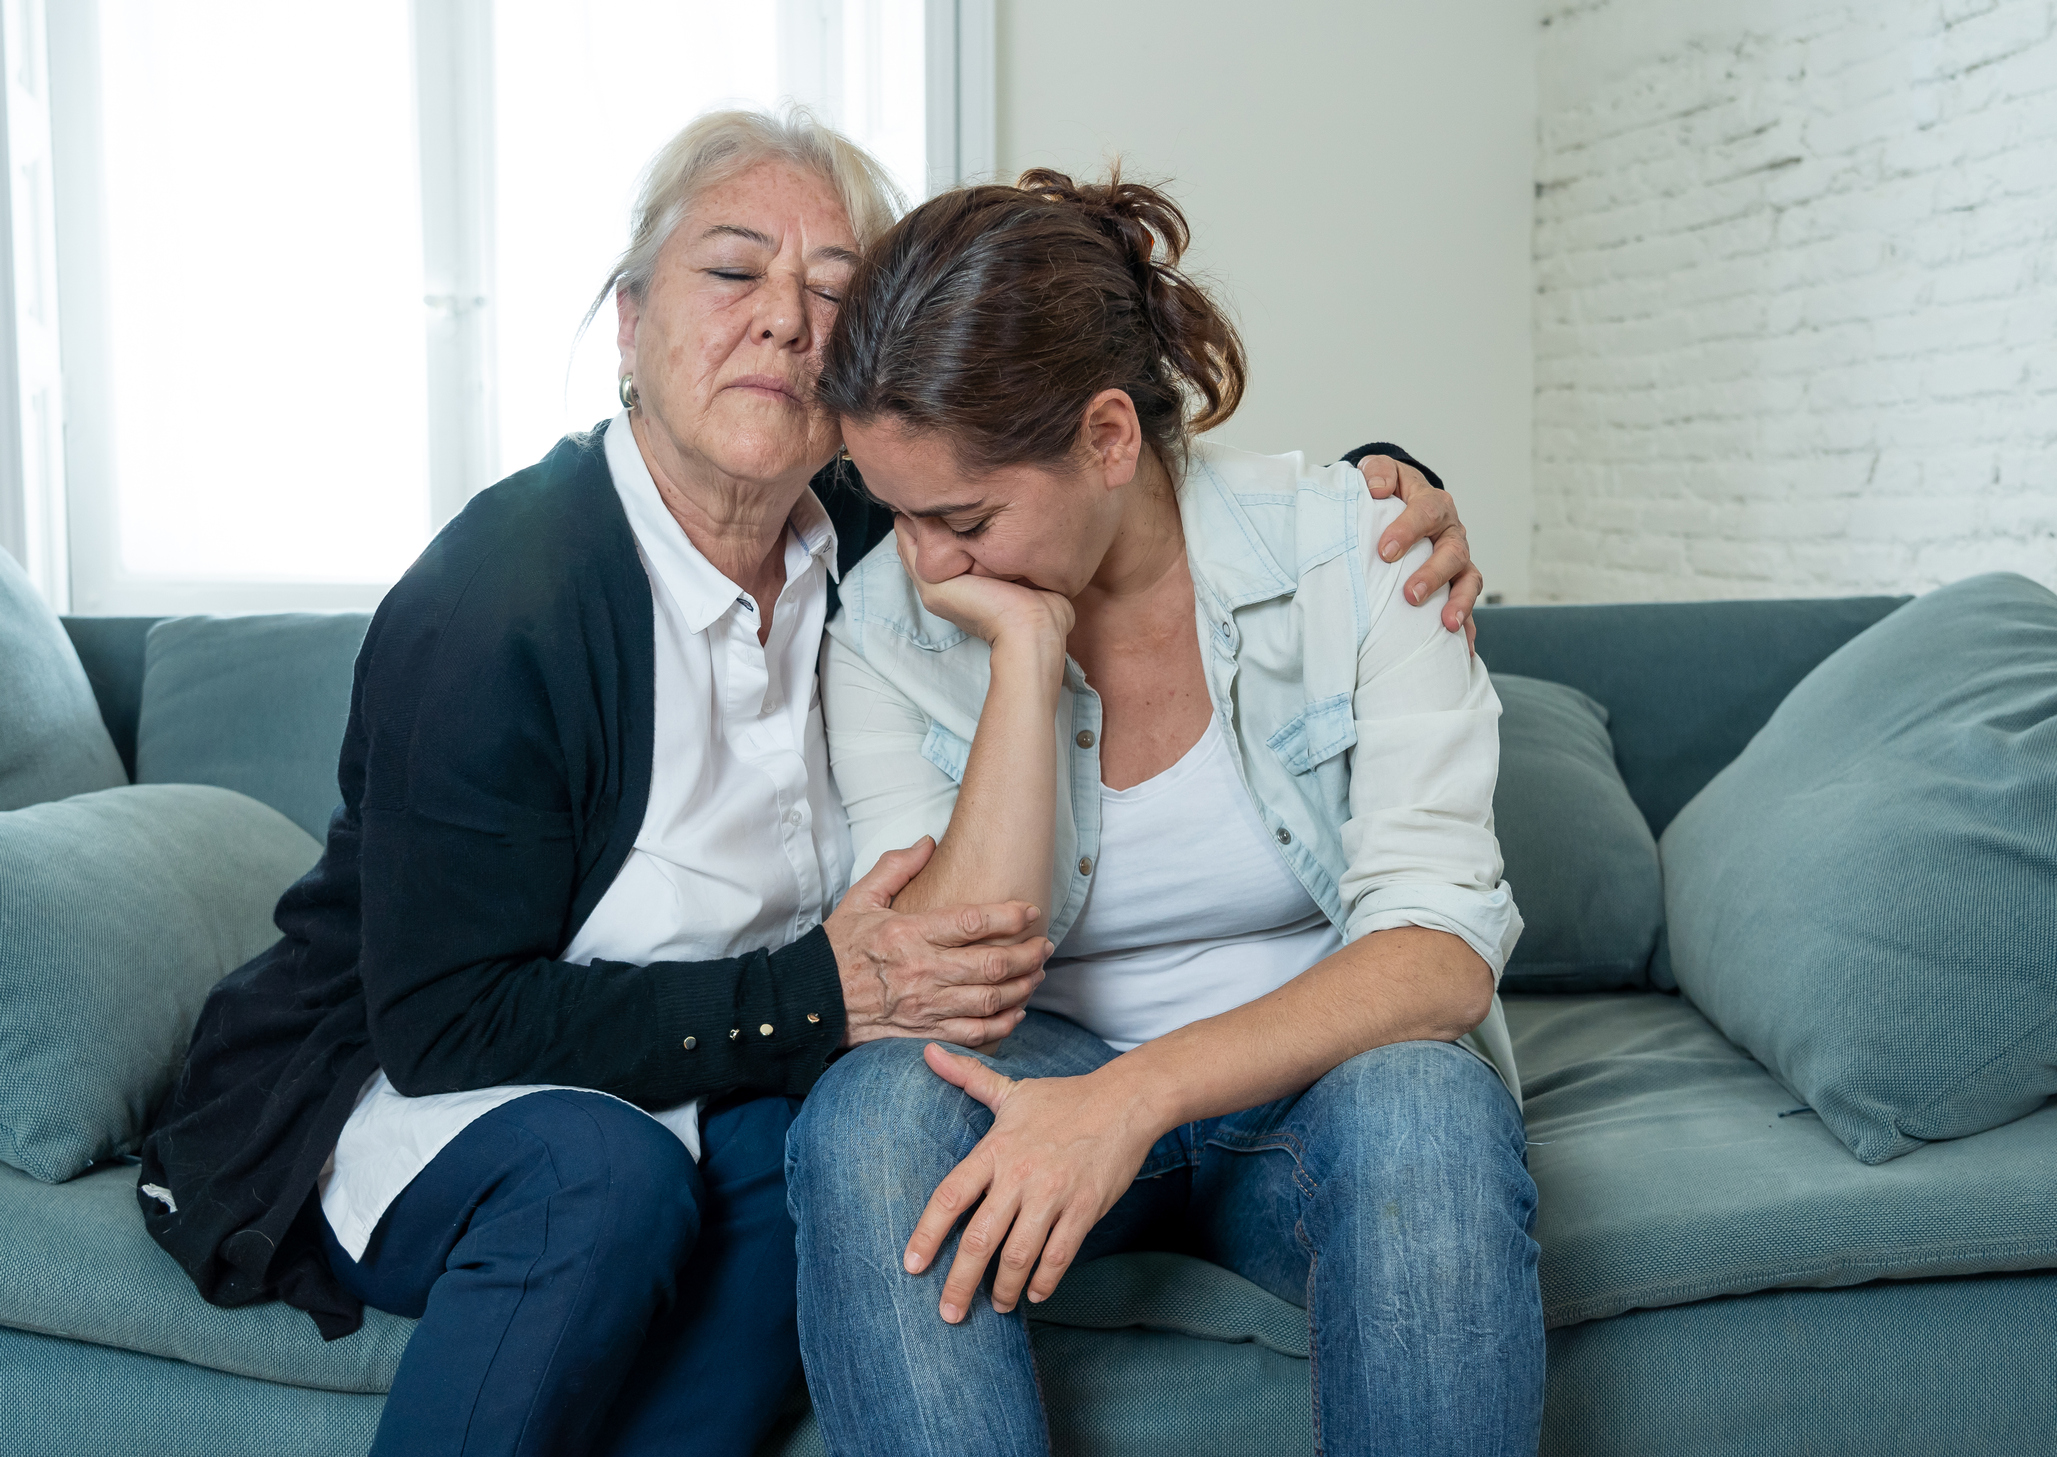 Healing a grieving nation